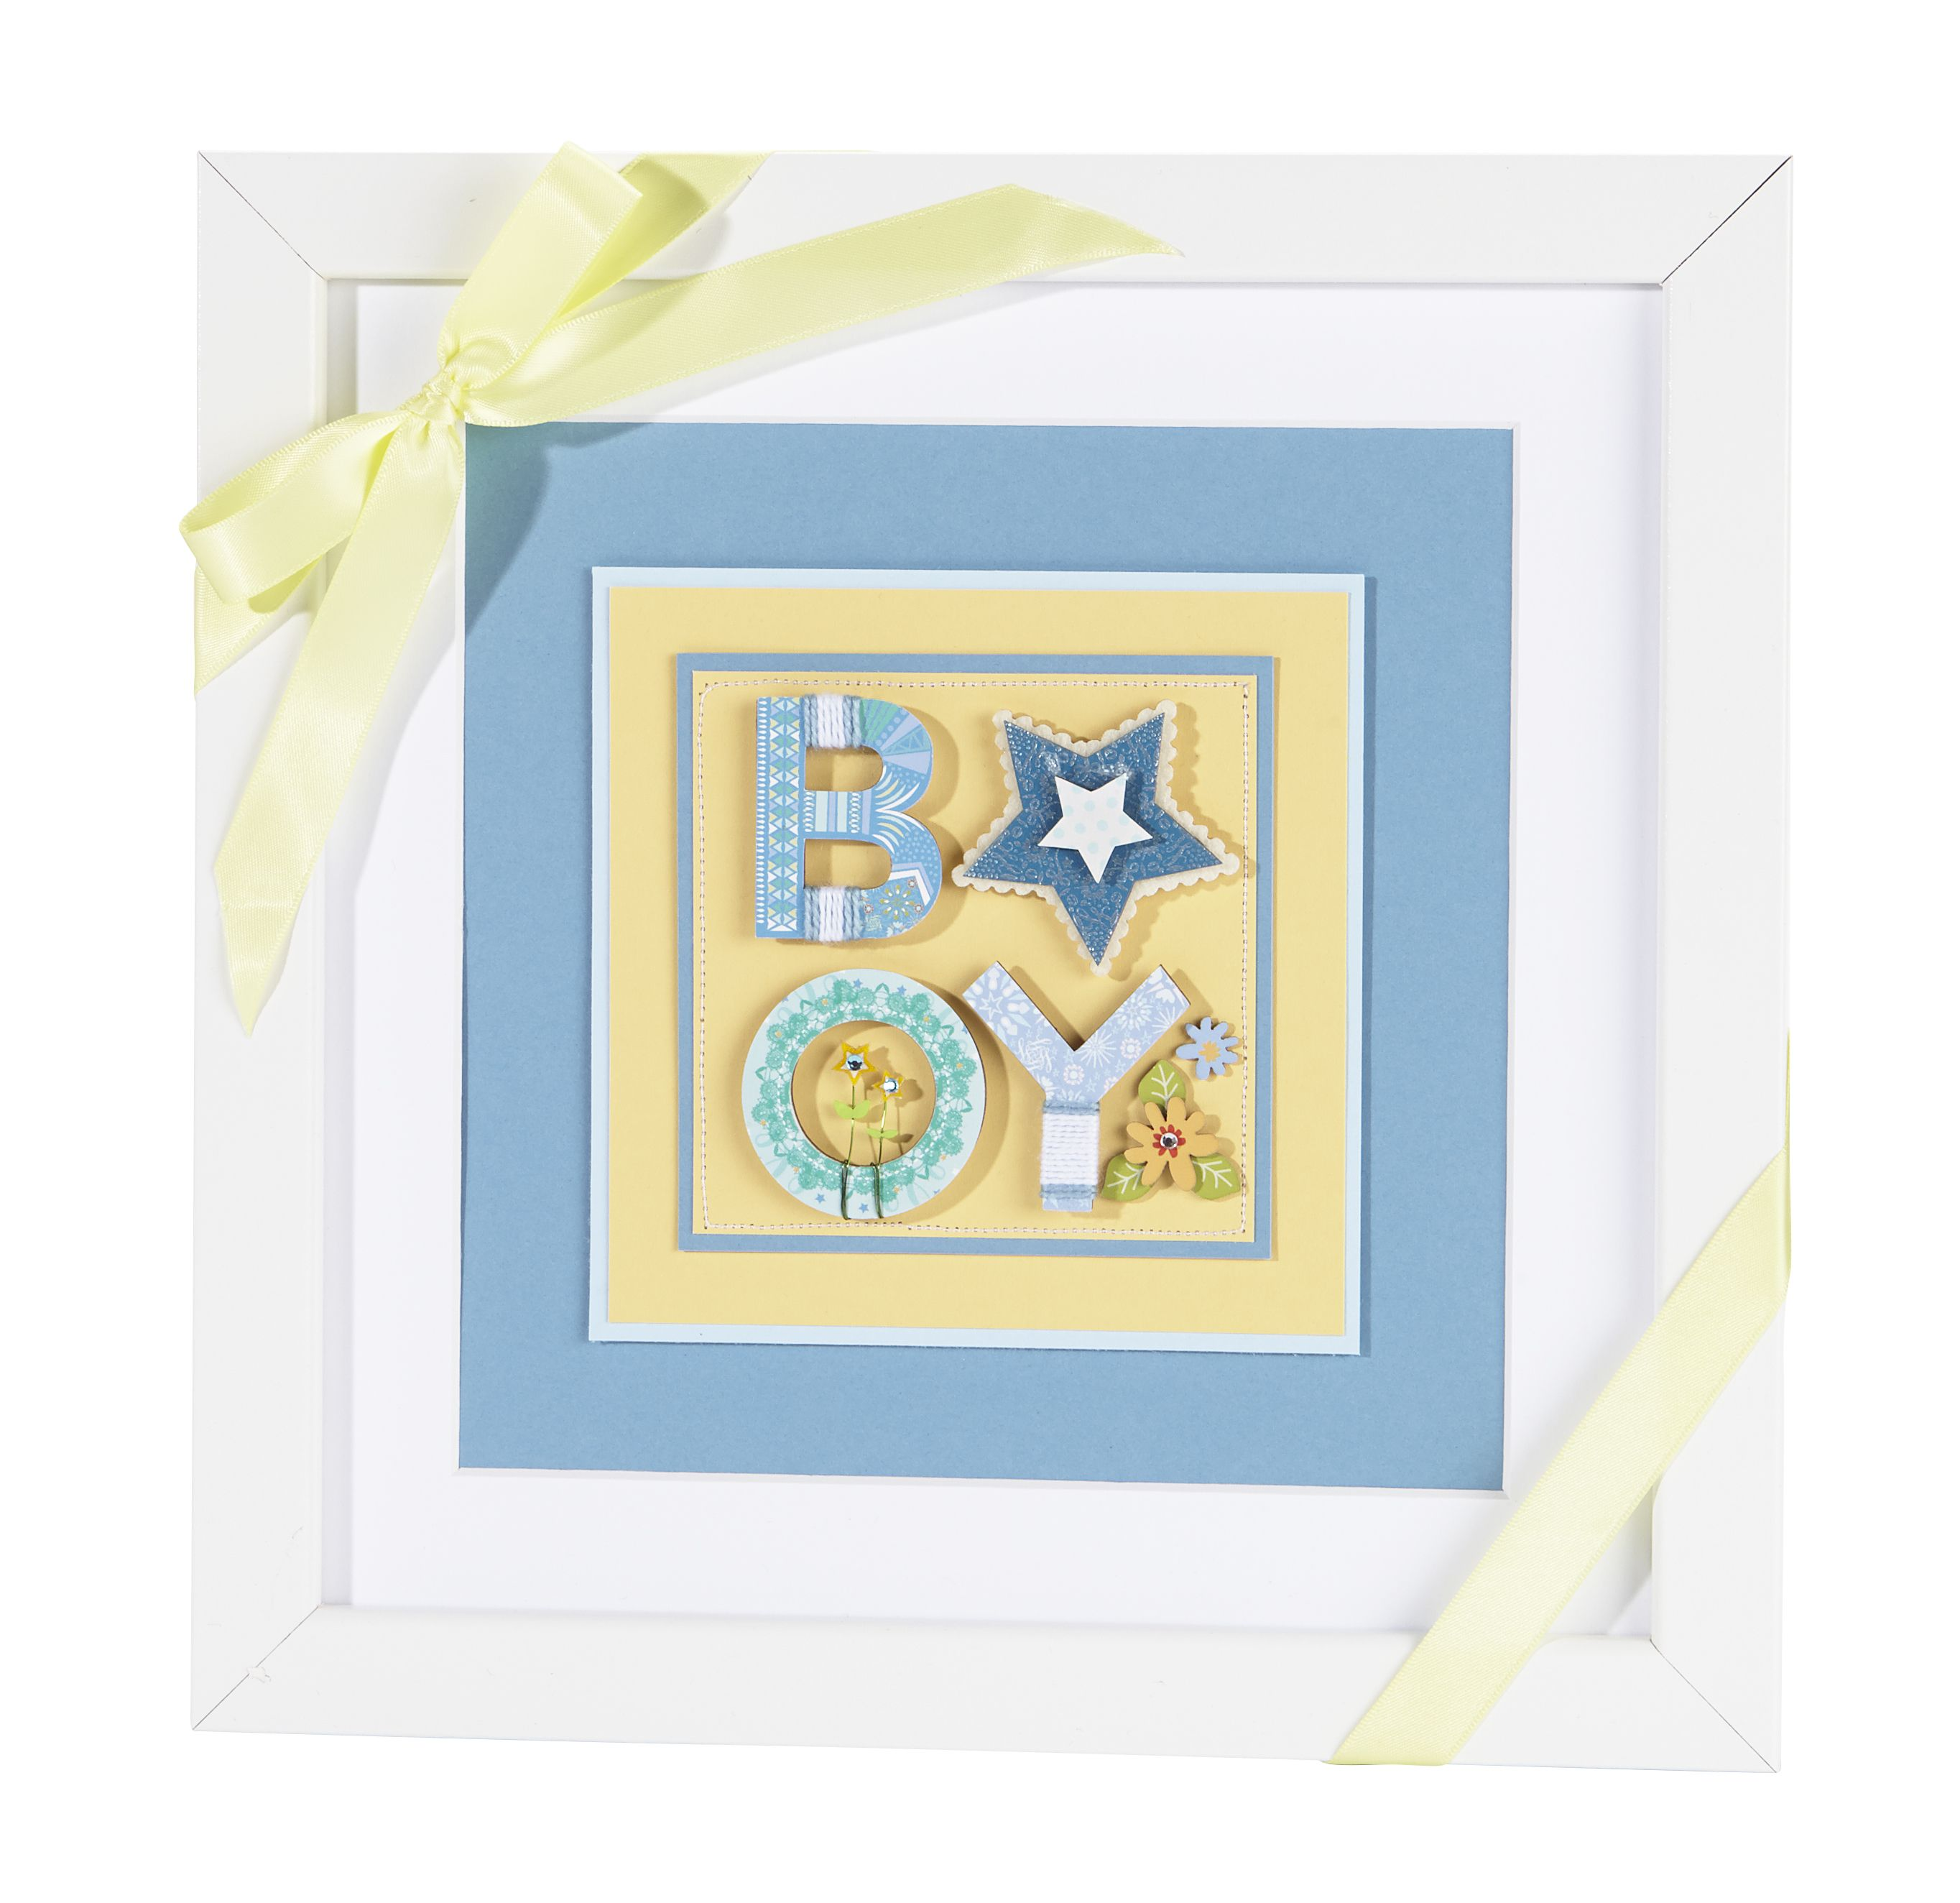 Jolees Boutique Baby Boy Frame #Craft #Baby #Babyshower